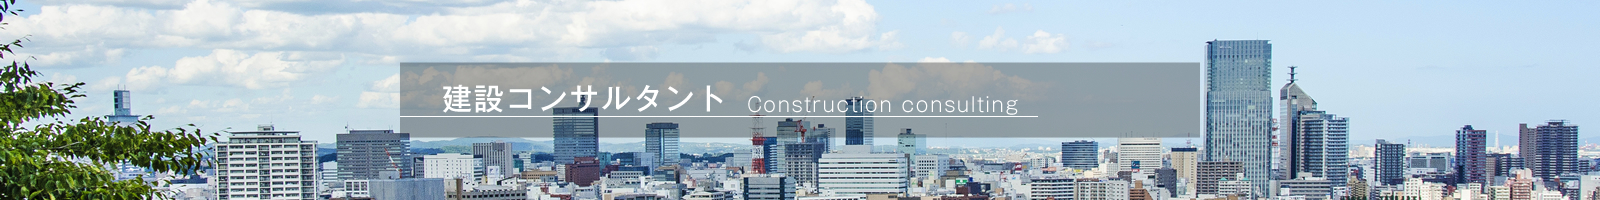 construction-consulting